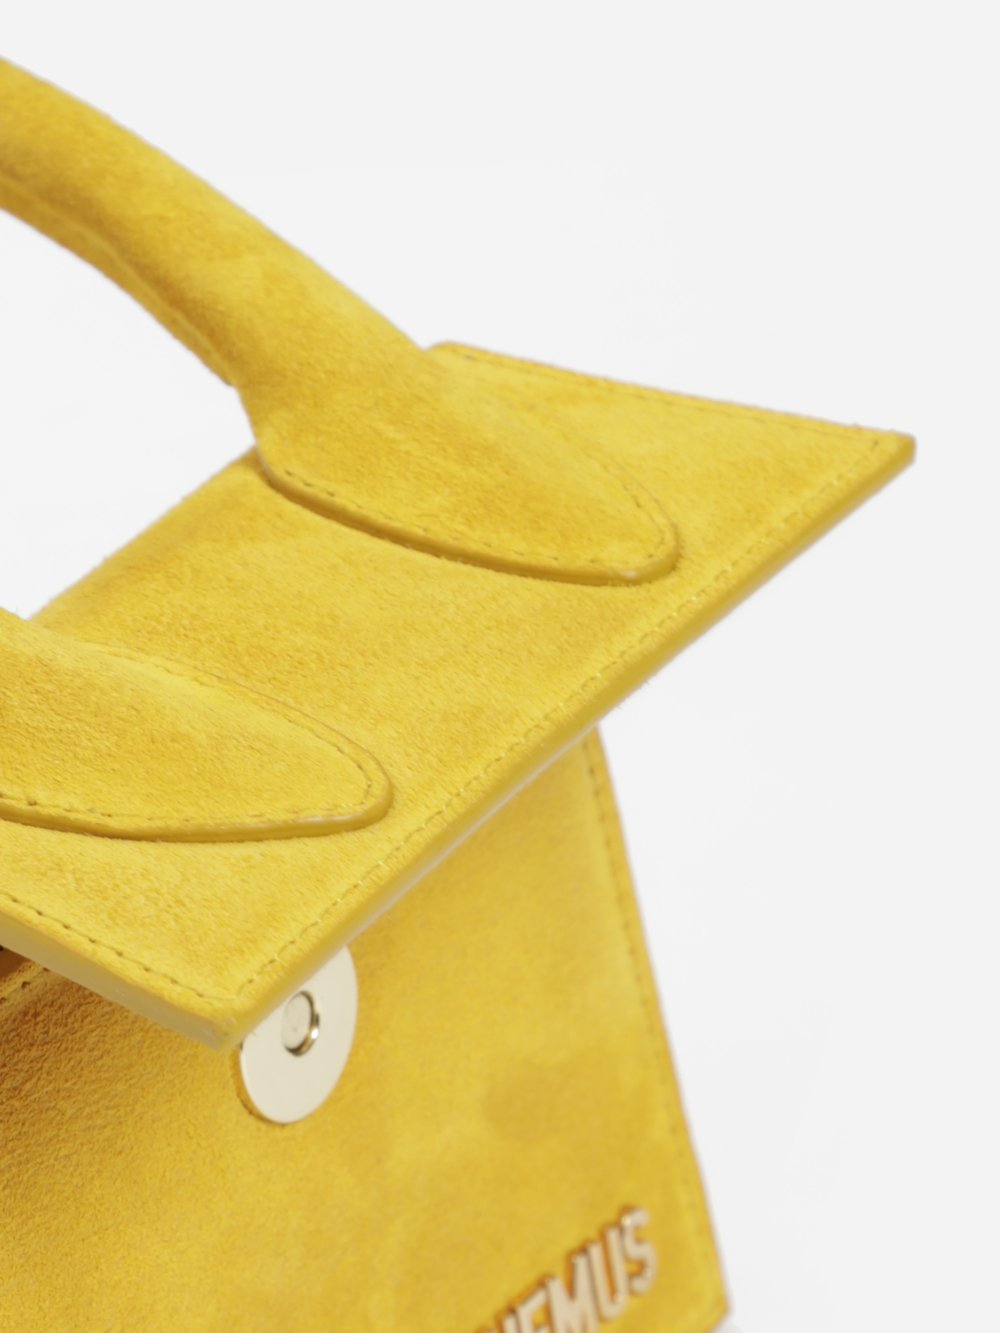 Jacquemus Le Sac Chiquito In Yellow